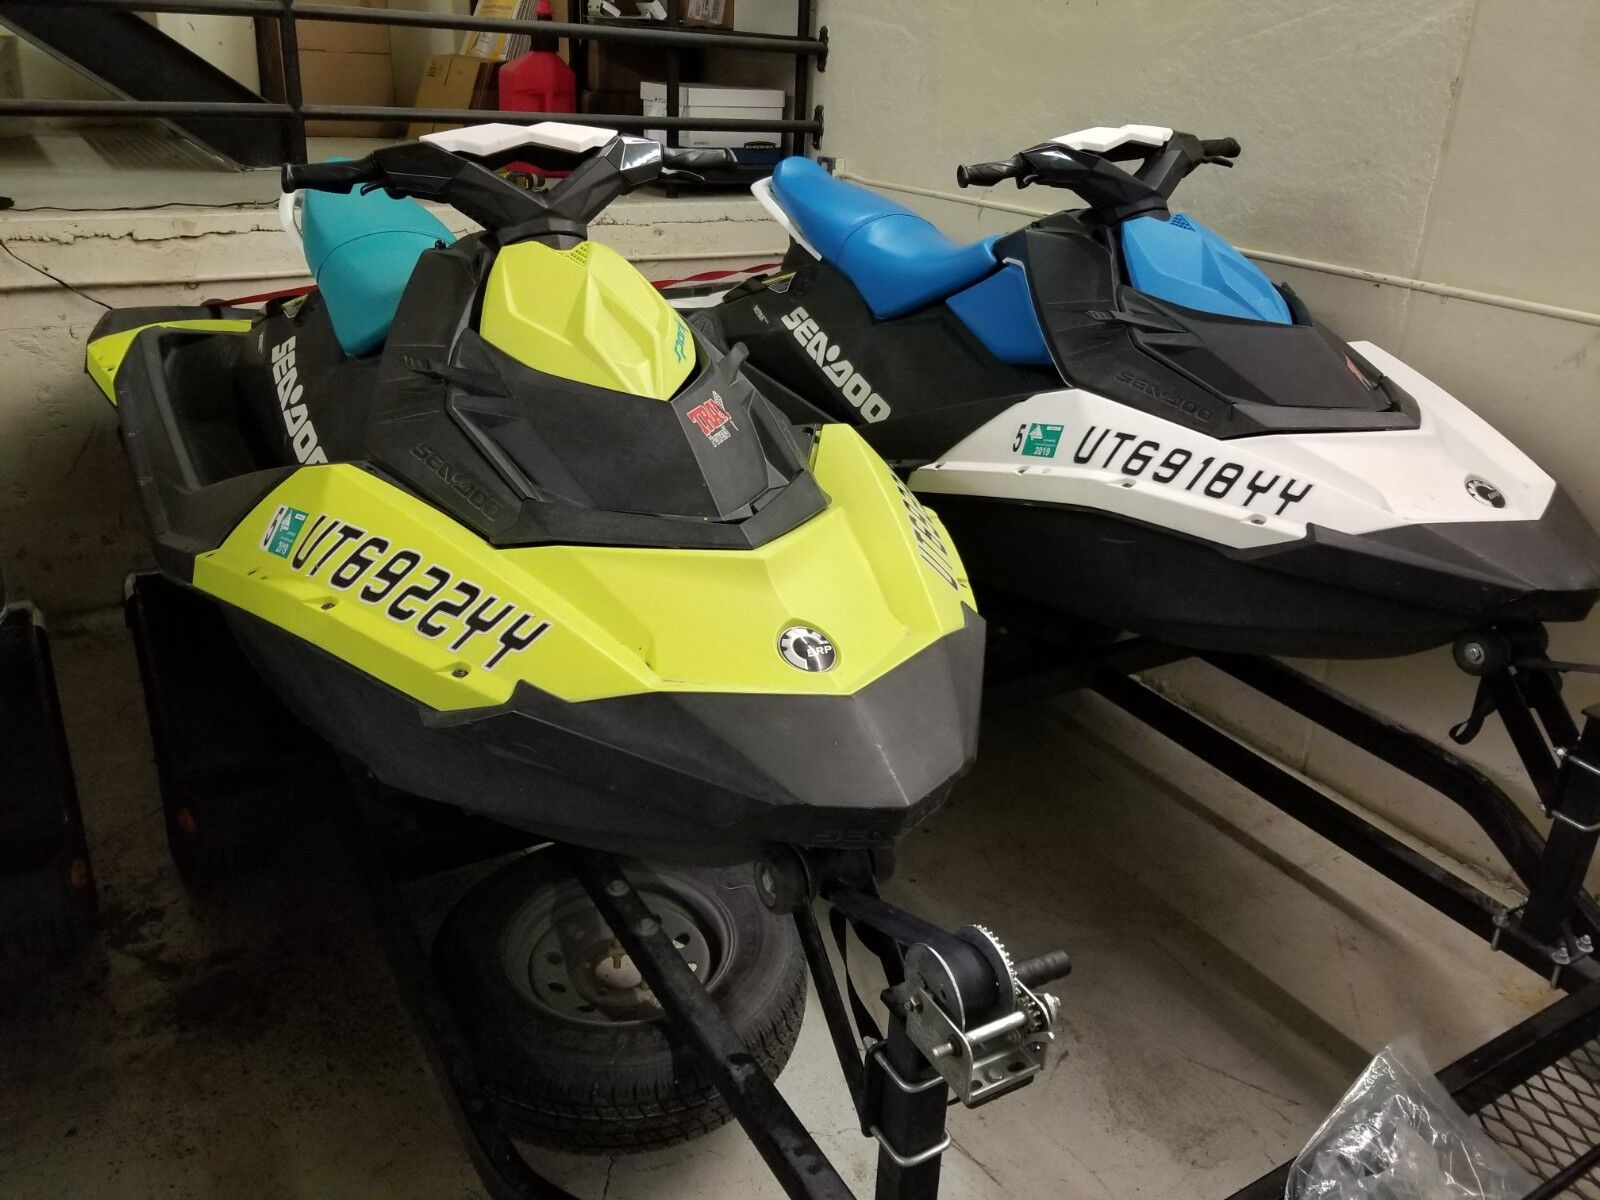 2018 Sea-Doo Spark 3-up 90HP with IBR